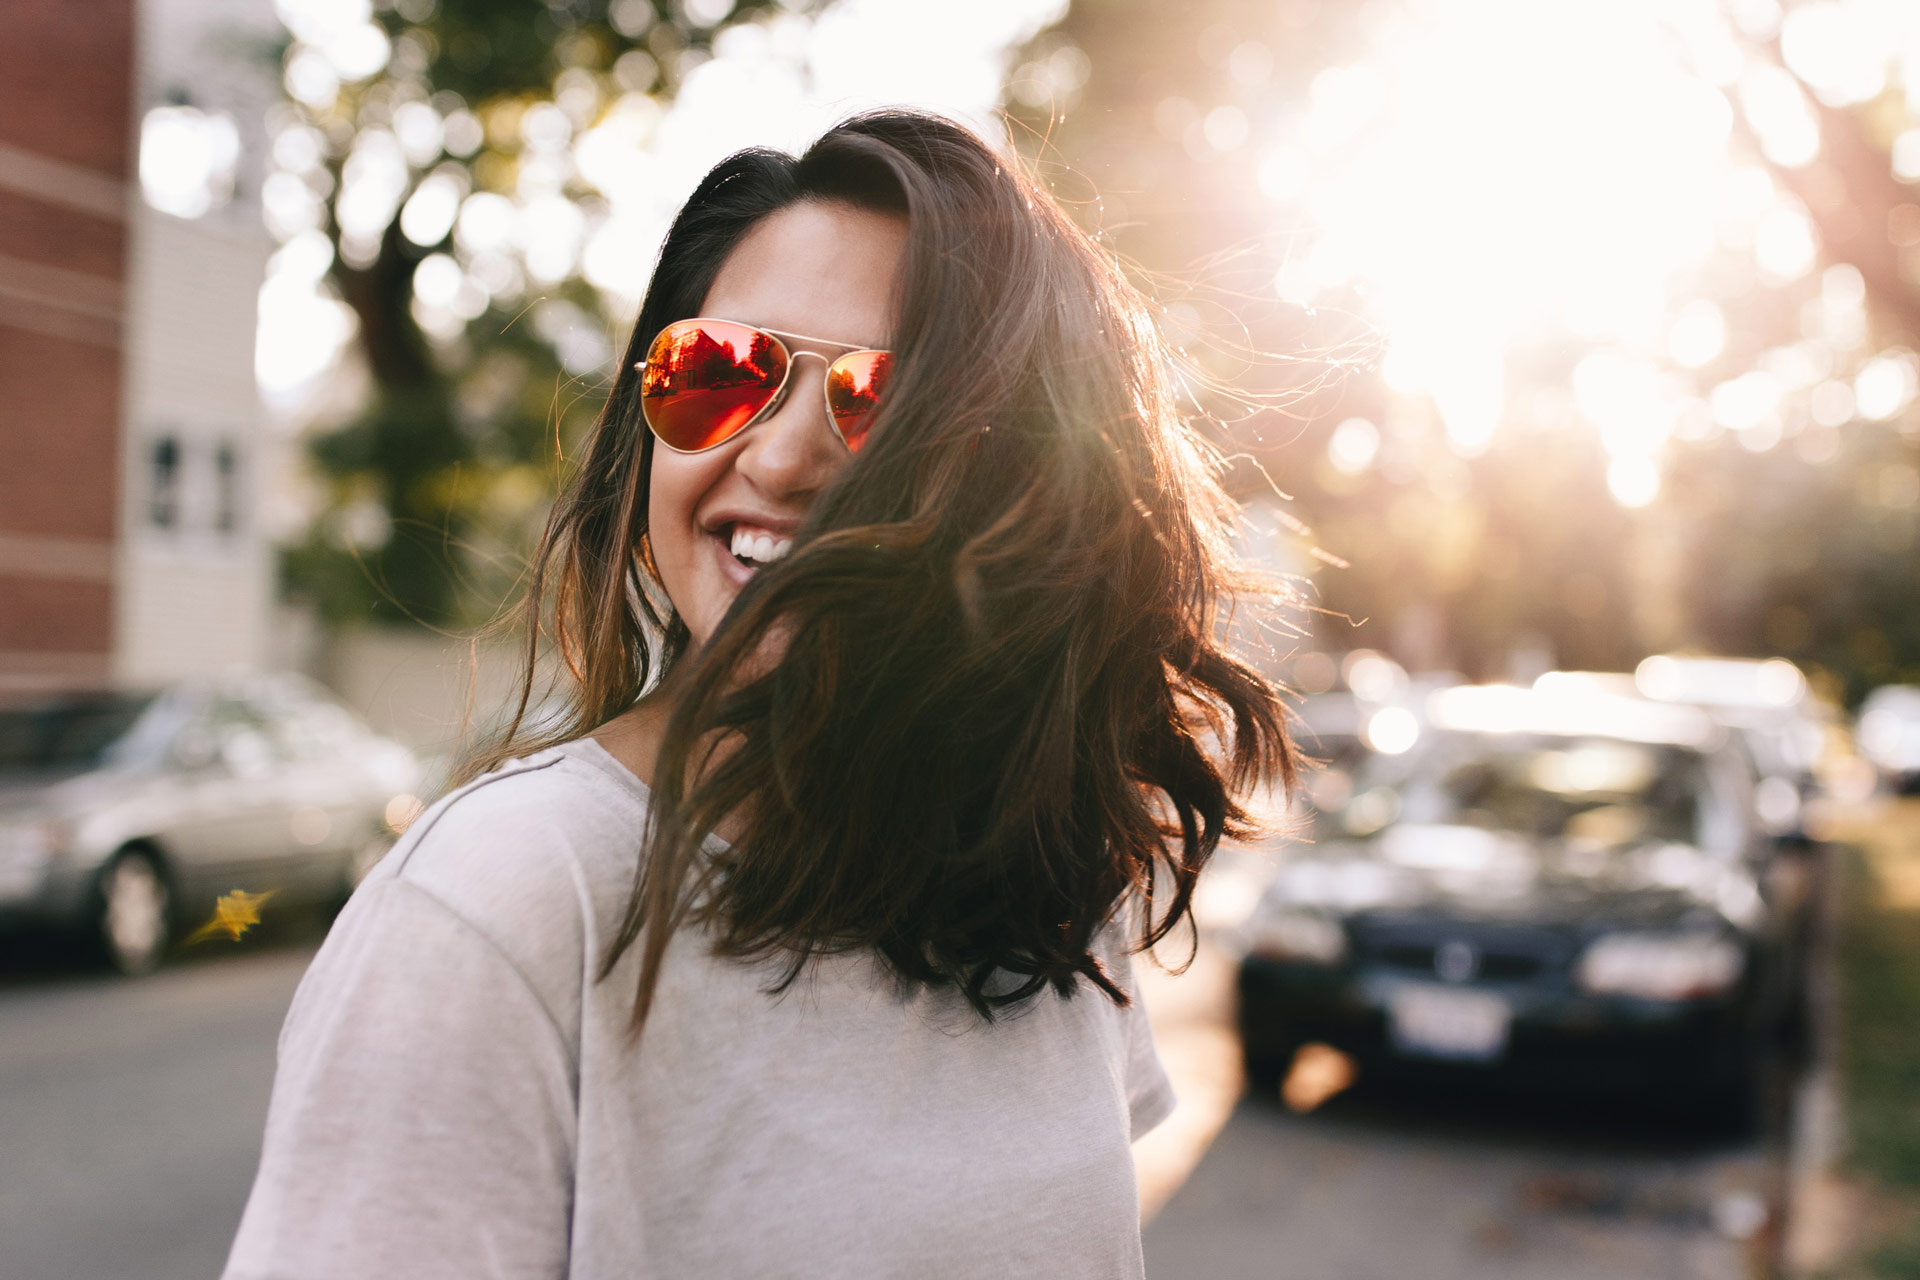 Woman with rose colored glasses in the fresh air